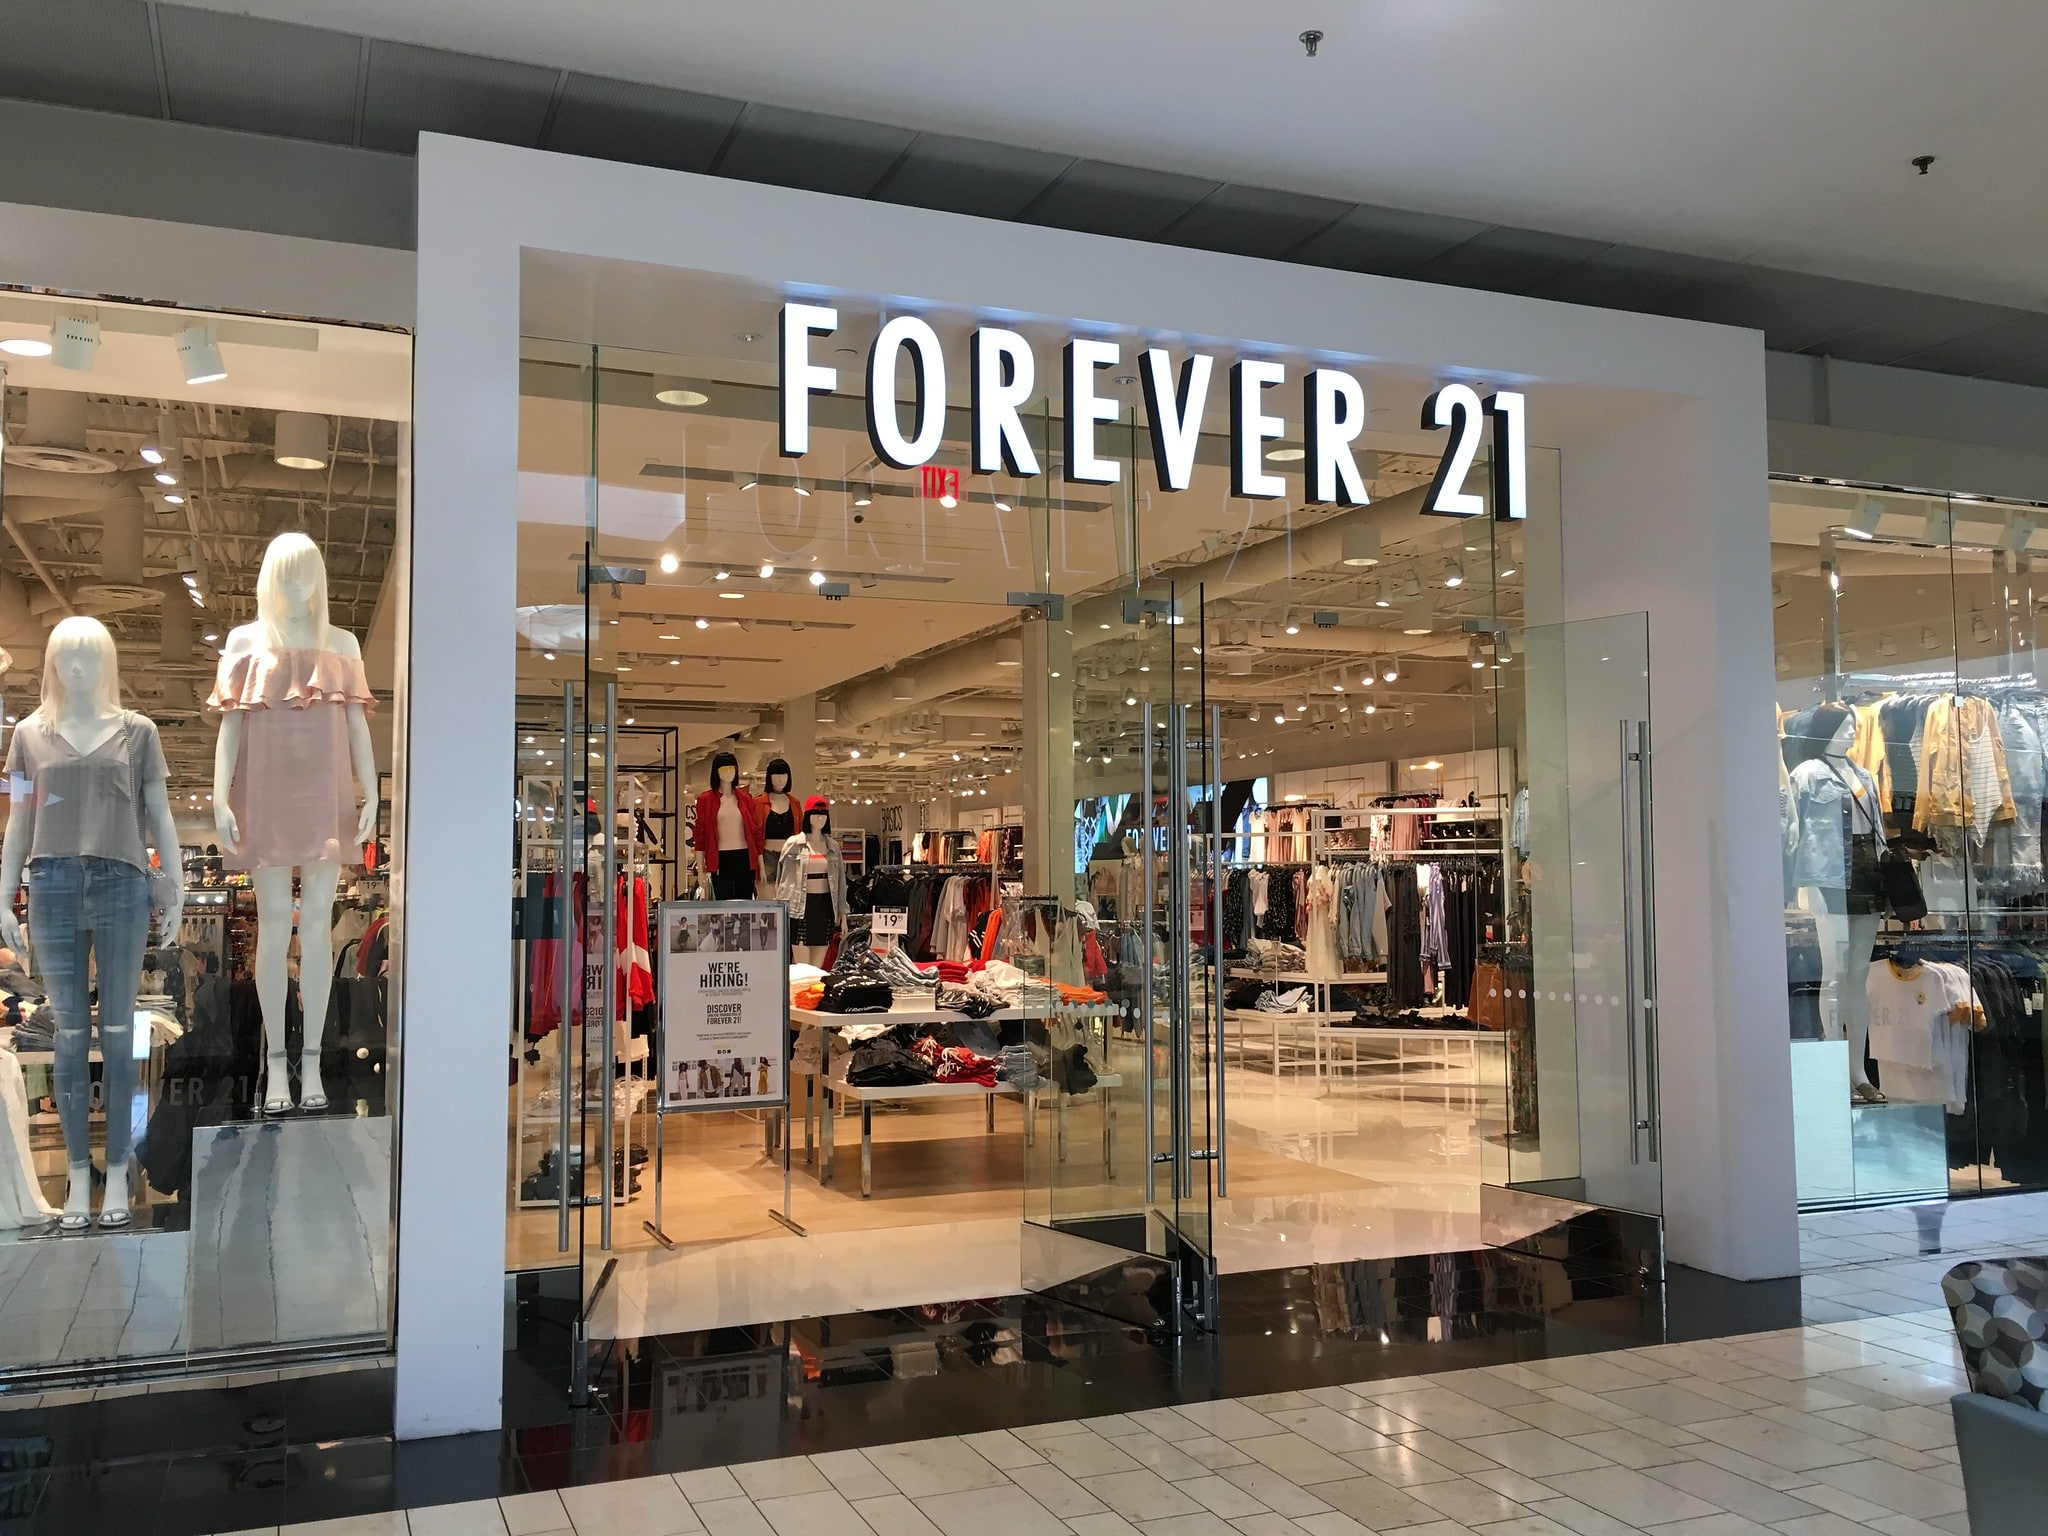 Retail stores that are closing down 27